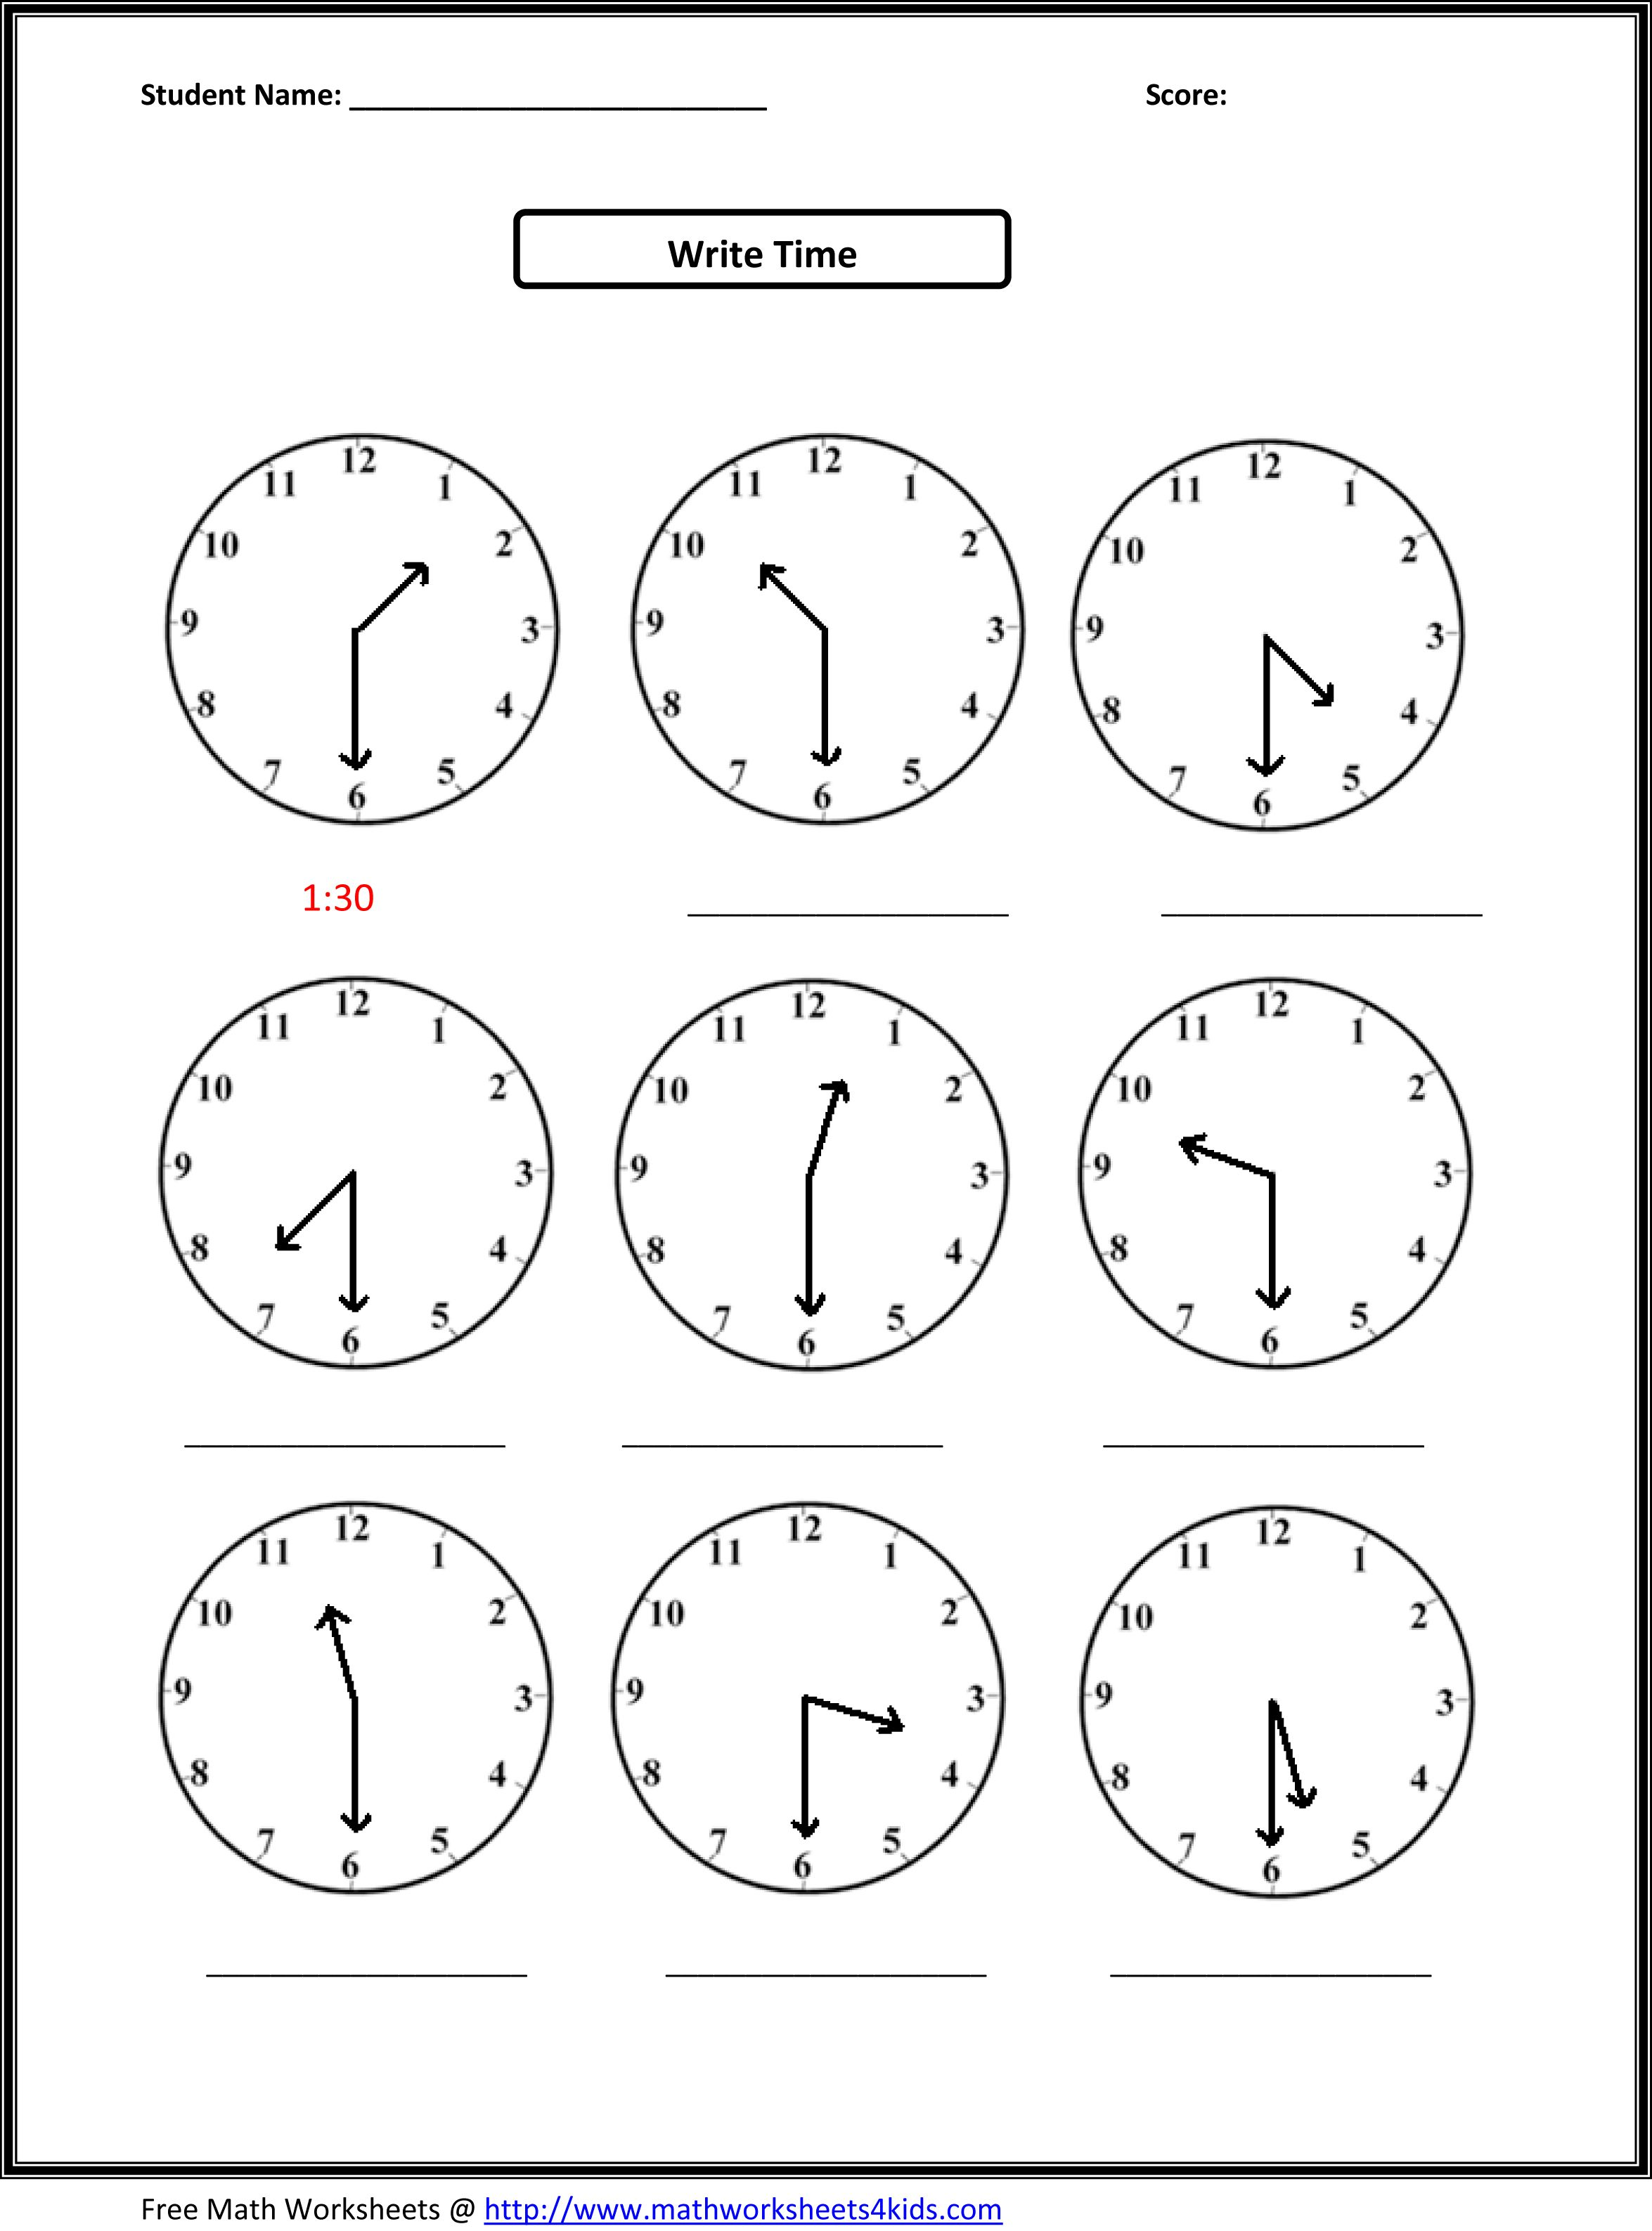 Proatmealus  Seductive Worksheet On Time For Grade   Reocurent With Excellent Free Printable Telling Time Worksheets Nd Grade  Reocurent With Comely Label Parts Of A Microscope Worksheet Also Worksheet For Letter H In Addition Union And Intersection Of Sets Worksheets And Maths Gcse Worksheets As Well As Mental Maths Worksheets For Class  Additionally Free Download Math Worksheets From Reocurentcom With Proatmealus  Excellent Worksheet On Time For Grade   Reocurent With Comely Free Printable Telling Time Worksheets Nd Grade  Reocurent And Seductive Label Parts Of A Microscope Worksheet Also Worksheet For Letter H In Addition Union And Intersection Of Sets Worksheets From Reocurentcom